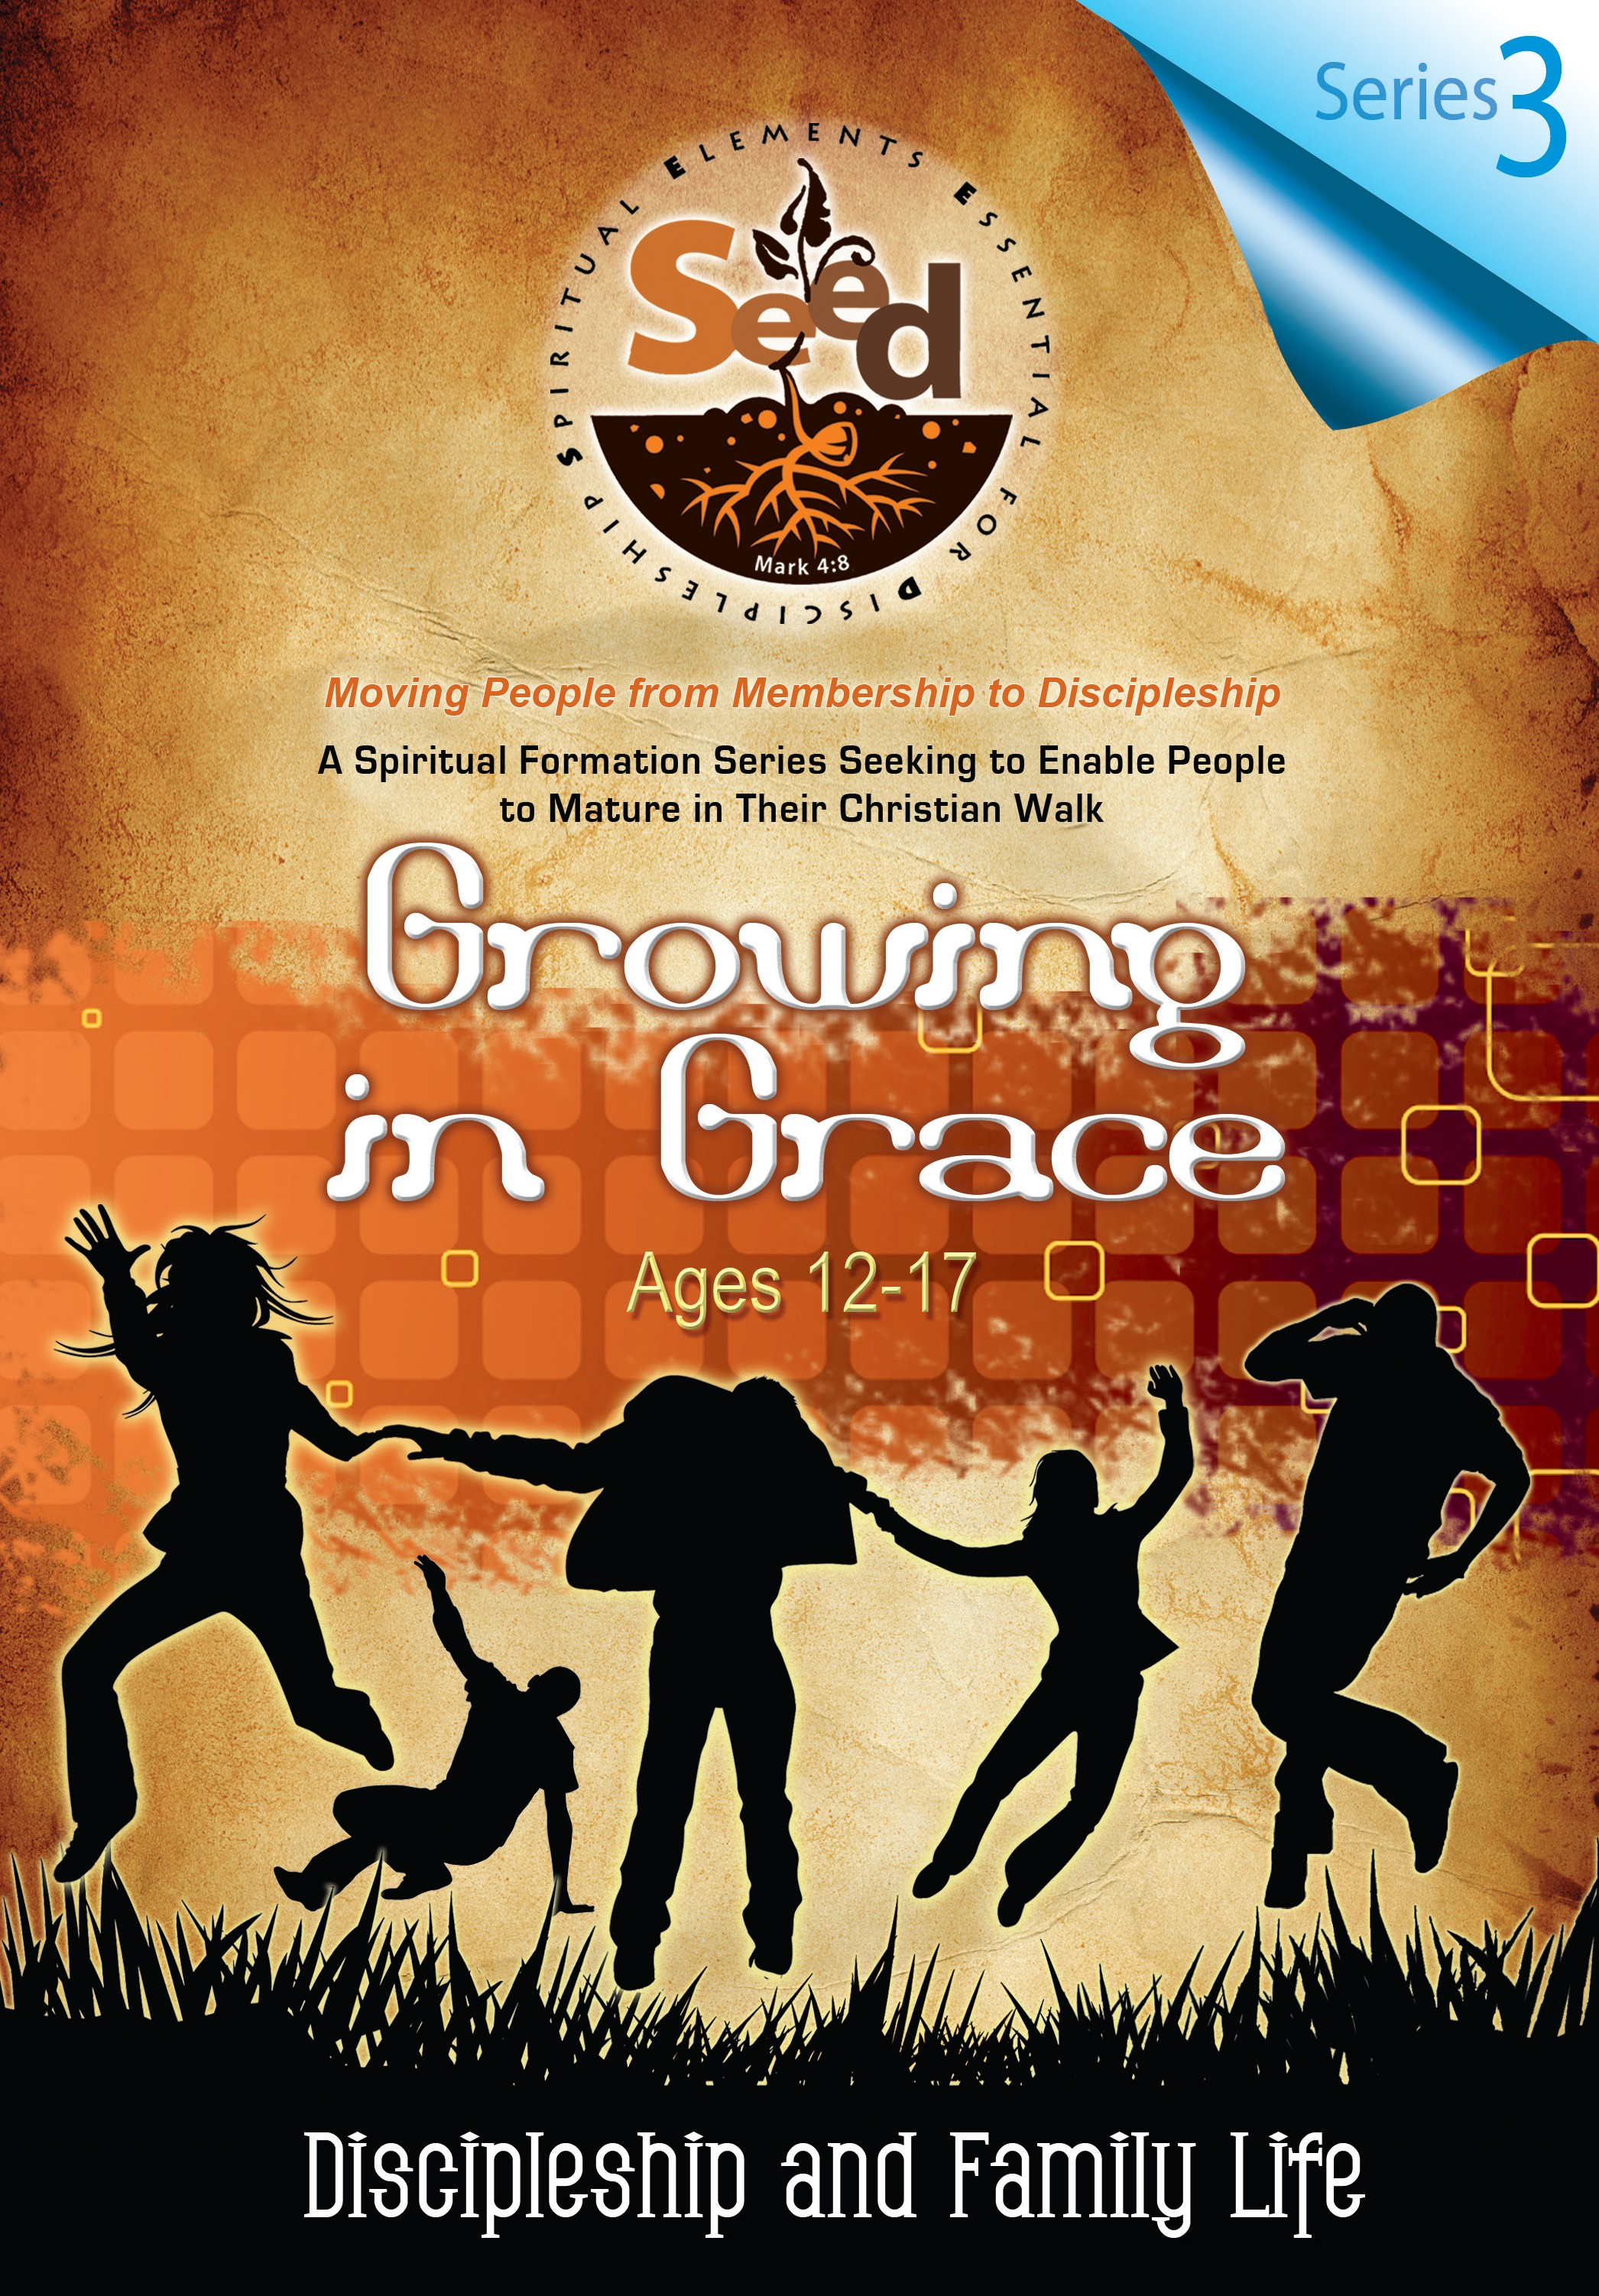 SEED Growing in Grace (Ages 12-17): Series 3: Discipleship and Family Life